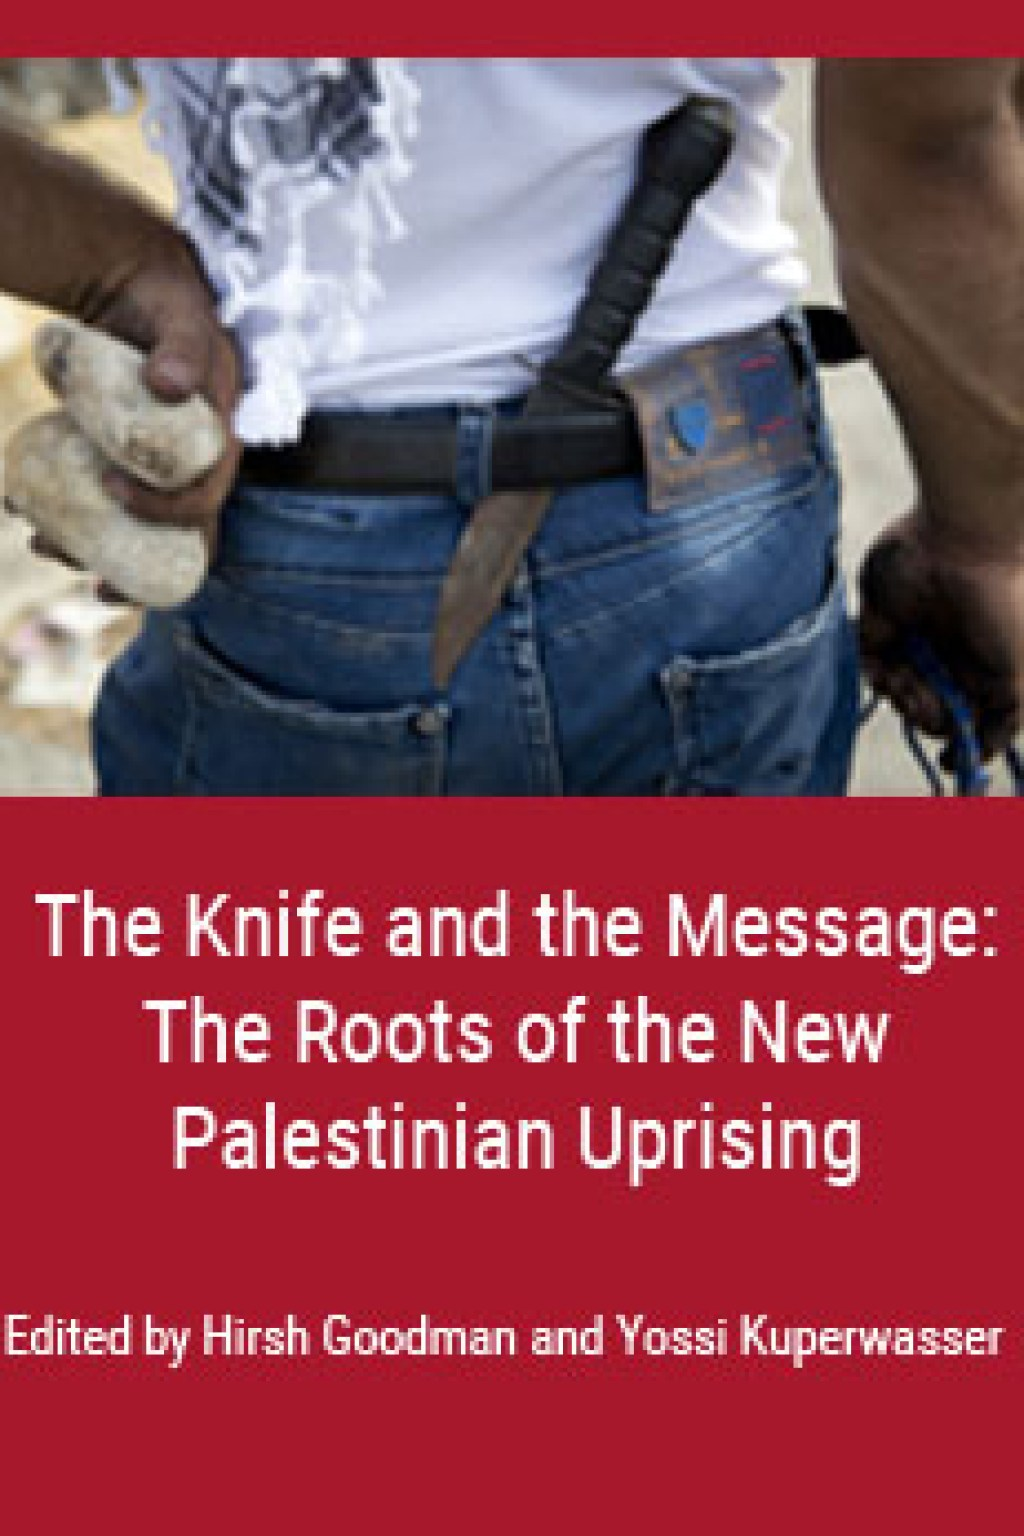 The Knife and the Message: The Roots of the New Palestinian Uprising